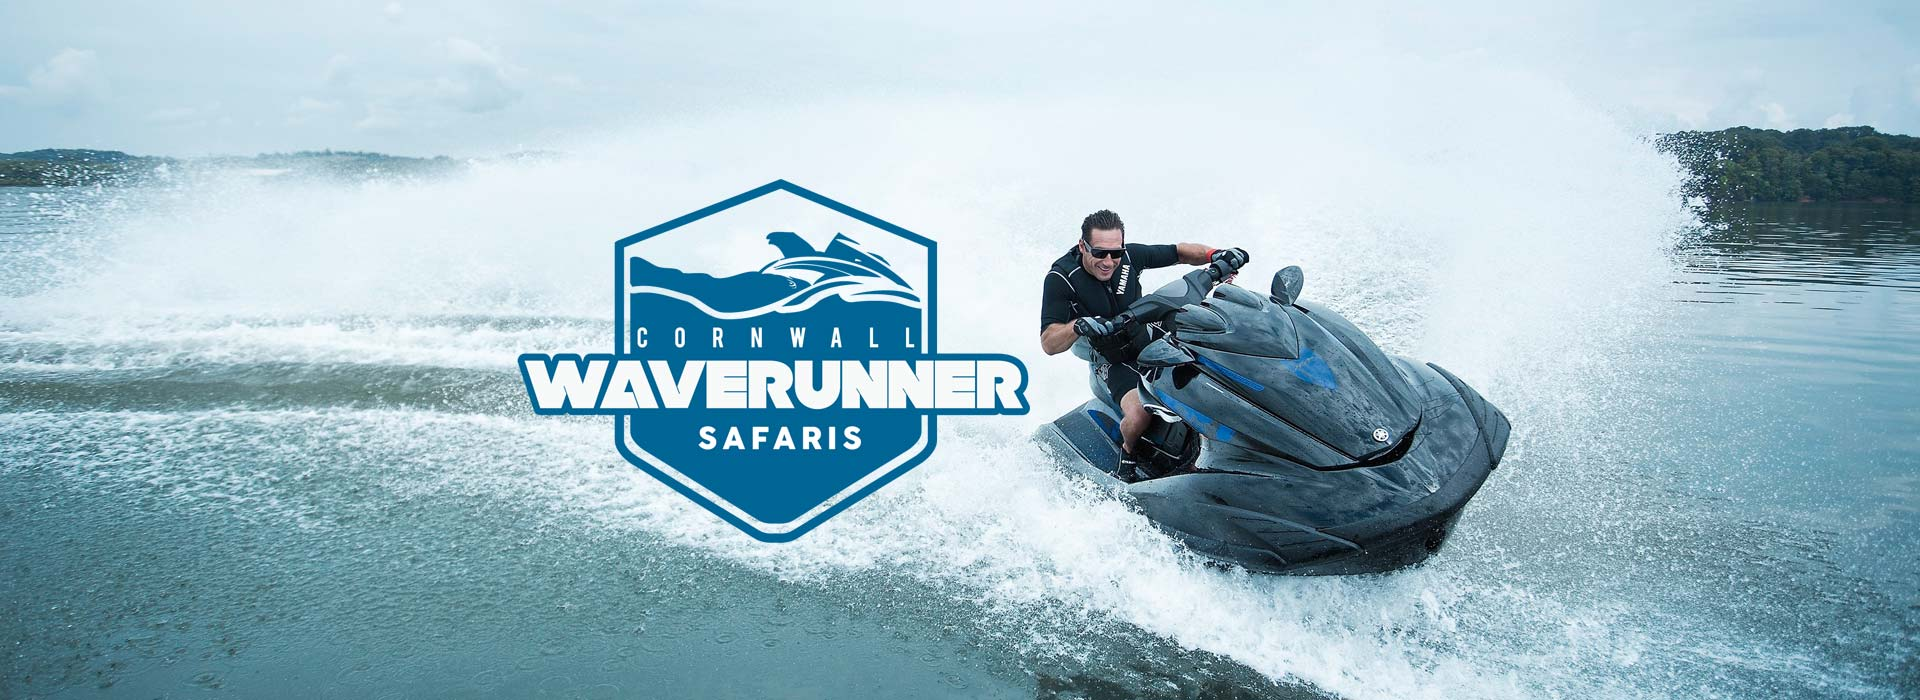 Cornwall Waverunner Safaris Jet Ski Hire and Safaris Newquay Cornwall